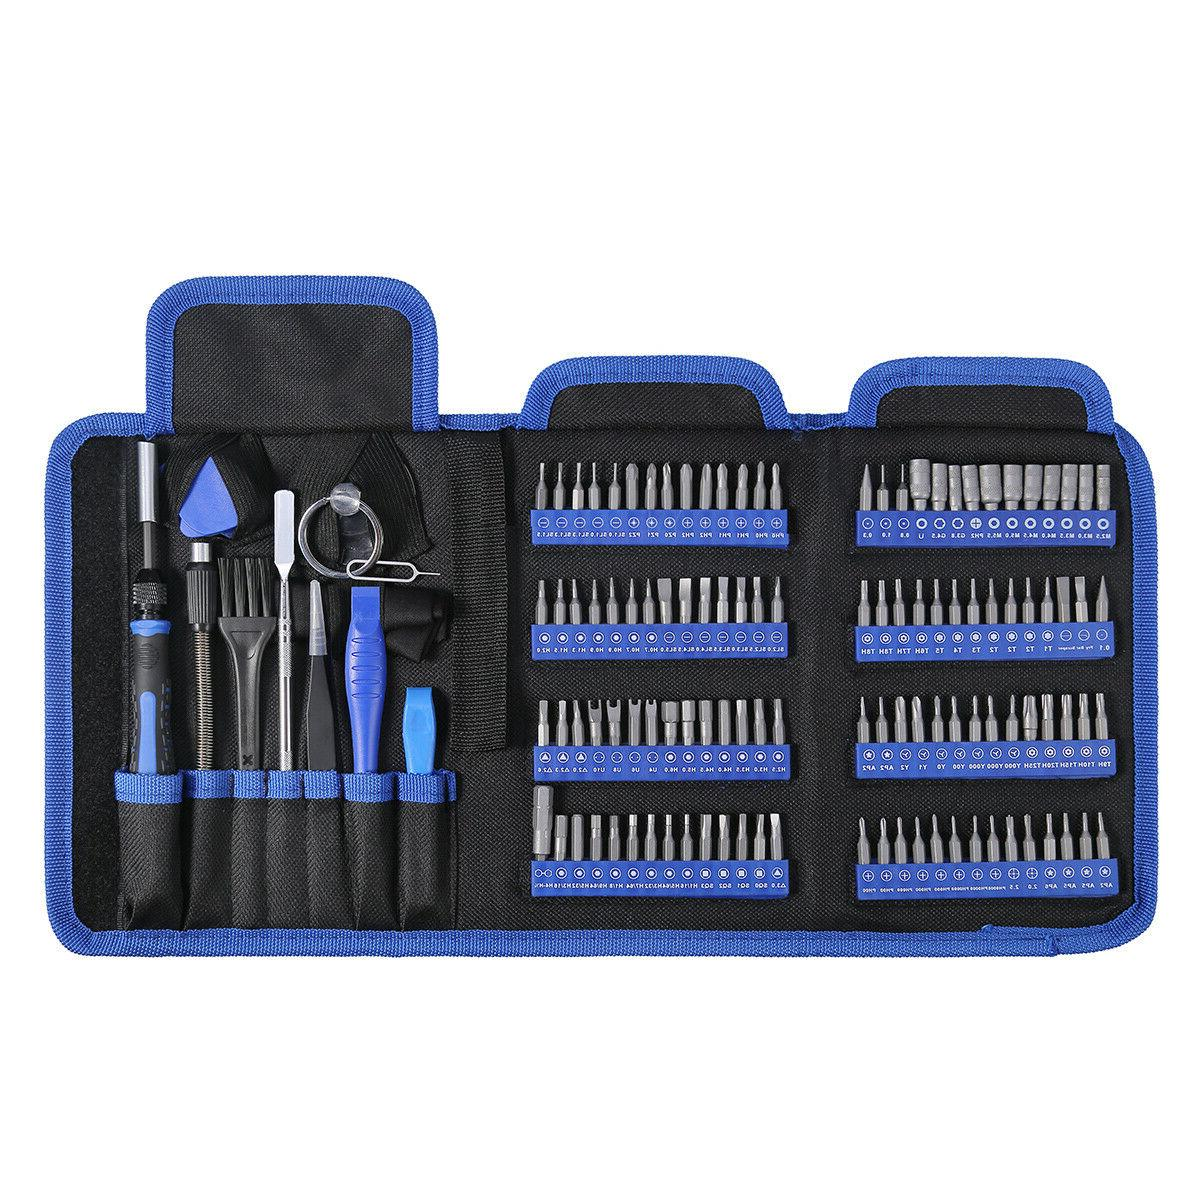 50-142In1 Screwdriver Phone Tool Kit 48-120